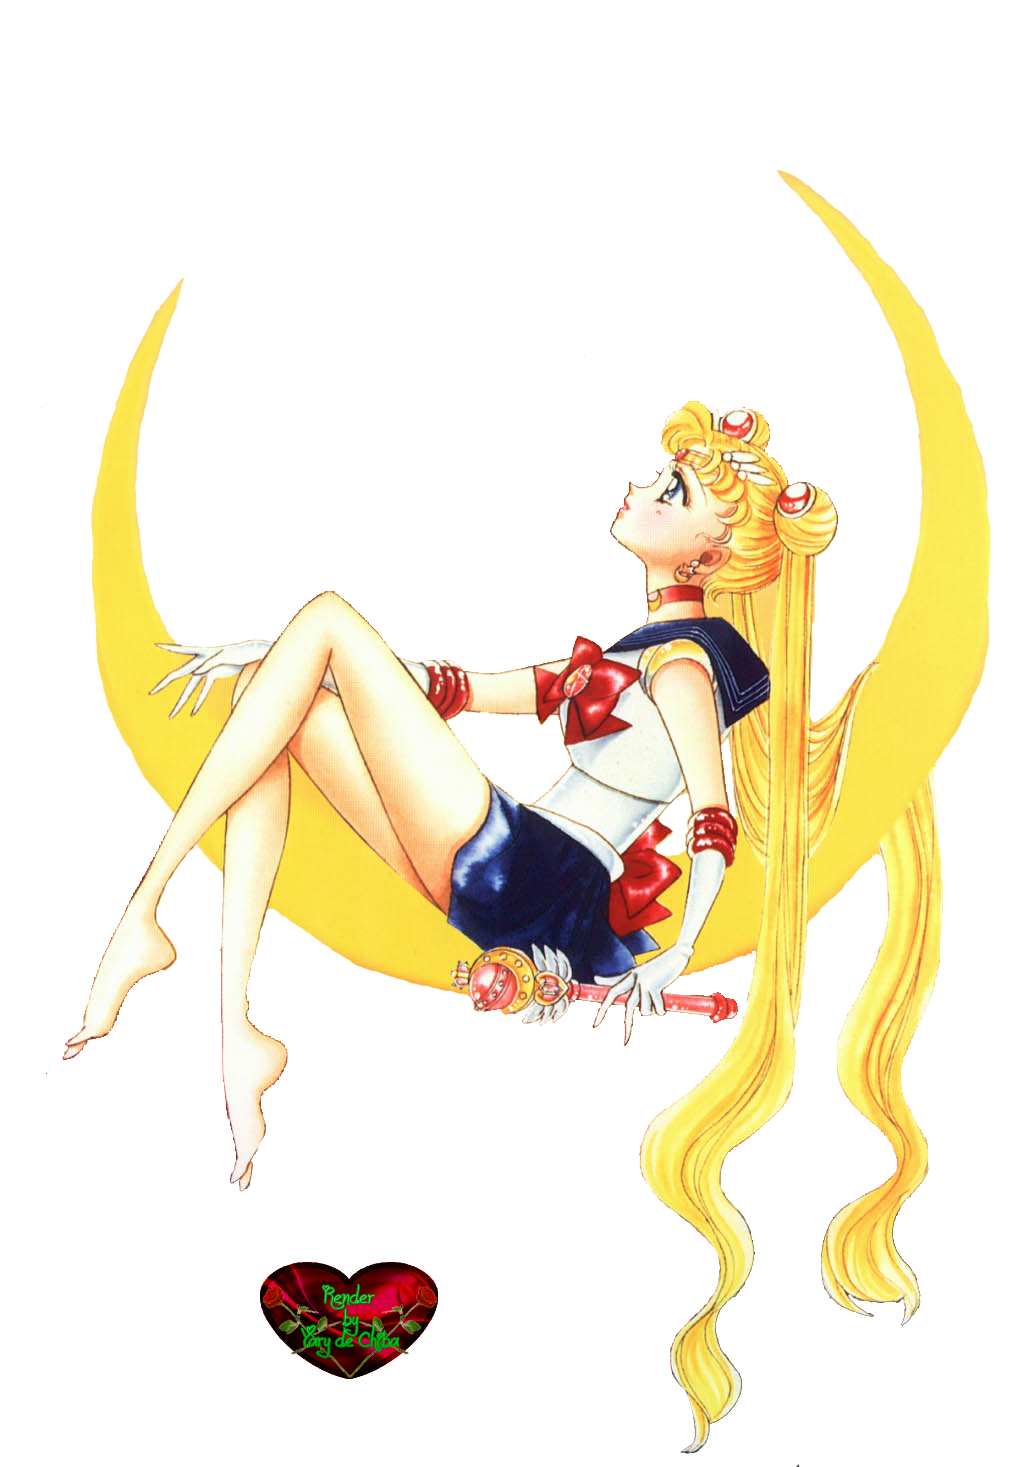 render__sailor__moon_by_yaryinlackech-d69h6lq.png